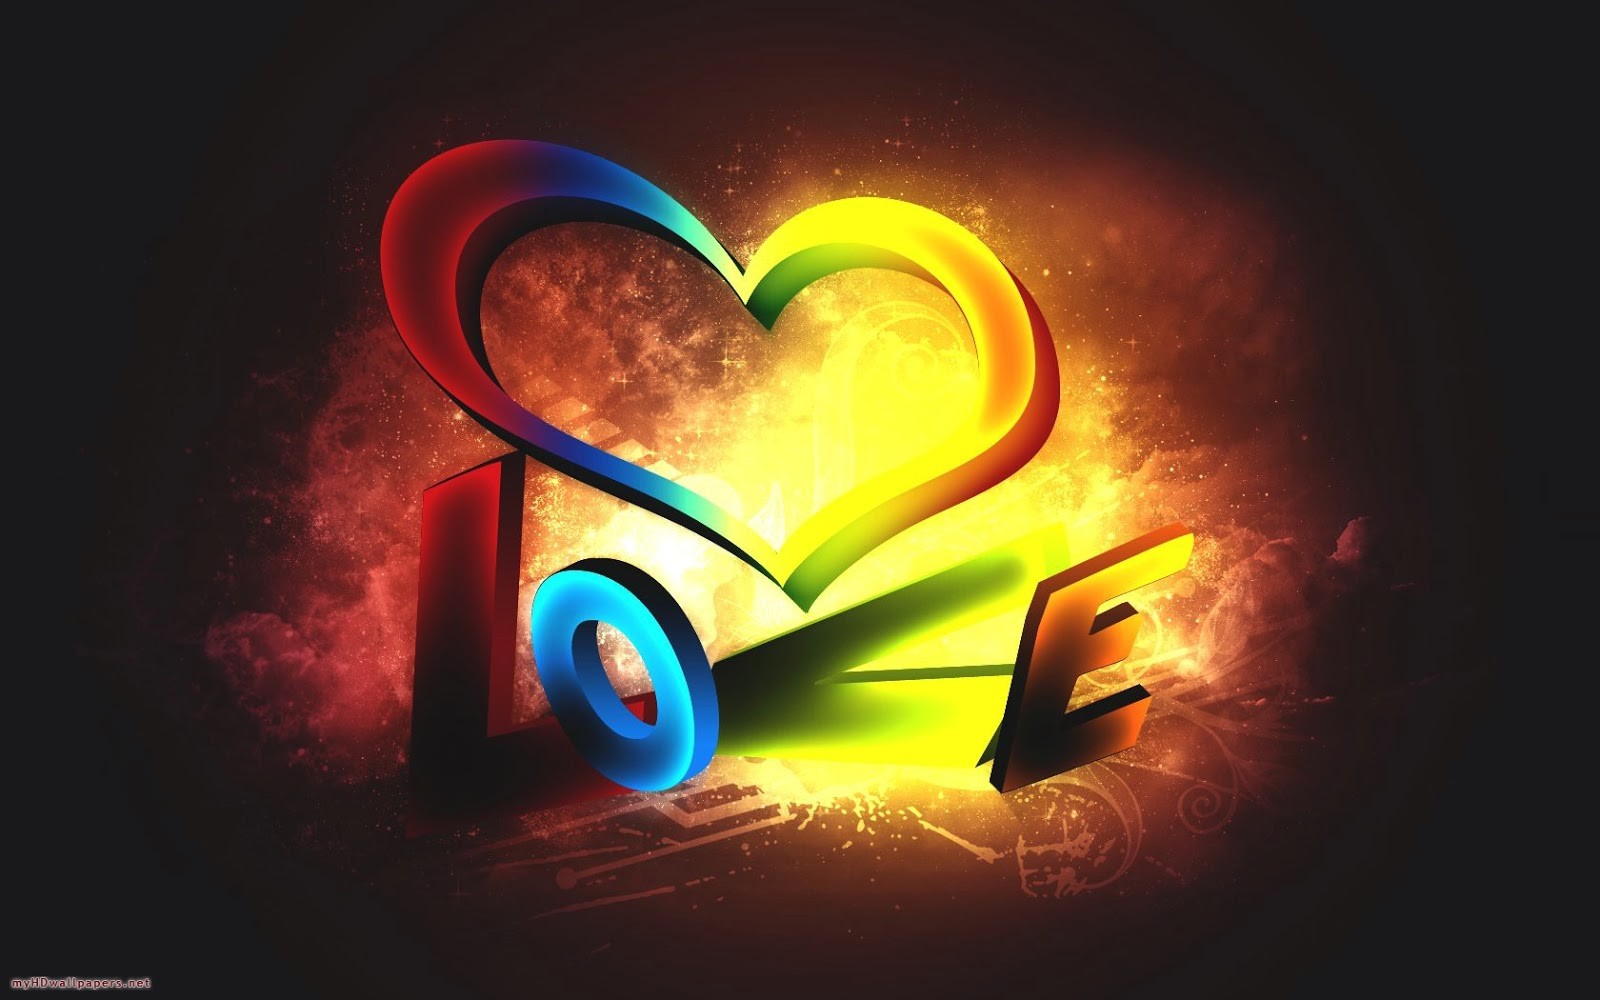 A Hd Wallpapers 100 Best Love Hd Wallpapers For Android: Unique And Wonderful Wallpapers Of Love Free Download For